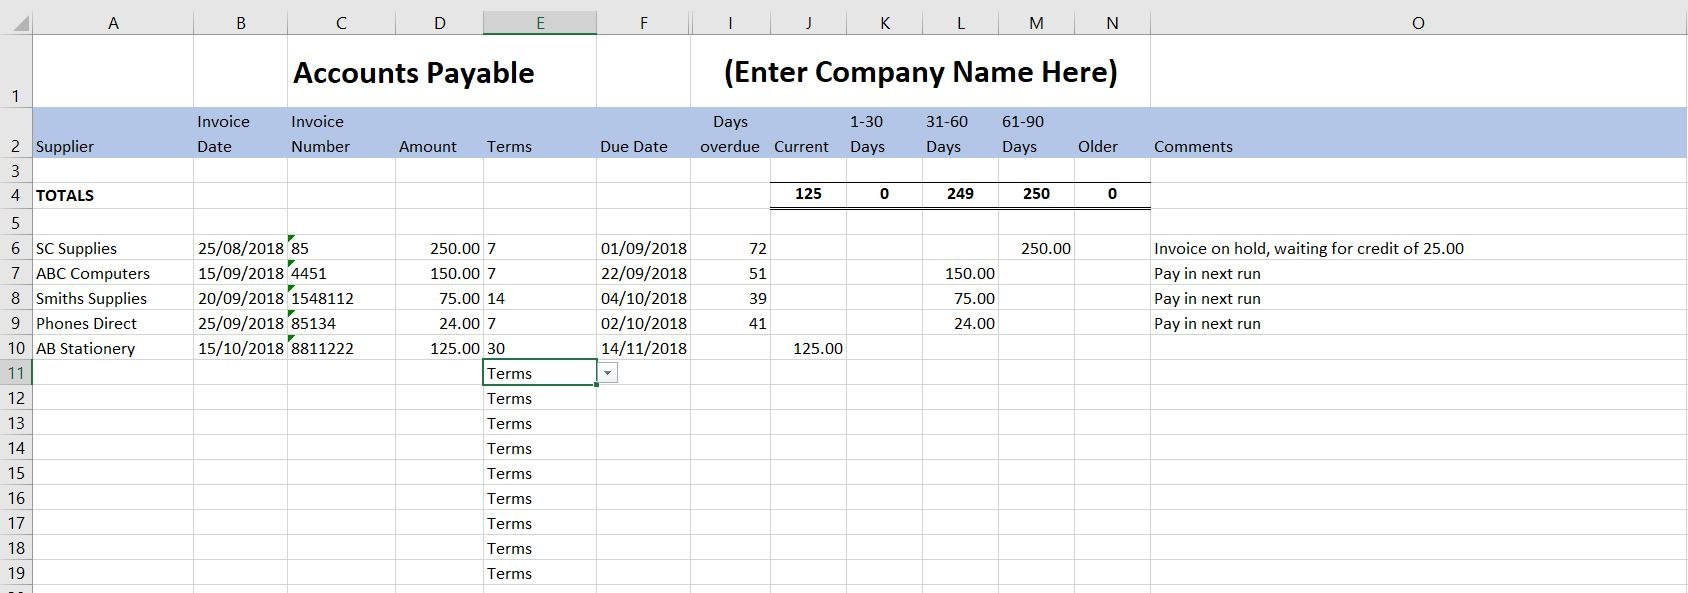 Free Accounting Spreadsheet Templates For Small Business Excel Uk With Regard To Free Excel Spreadsheet Templates For Small Business